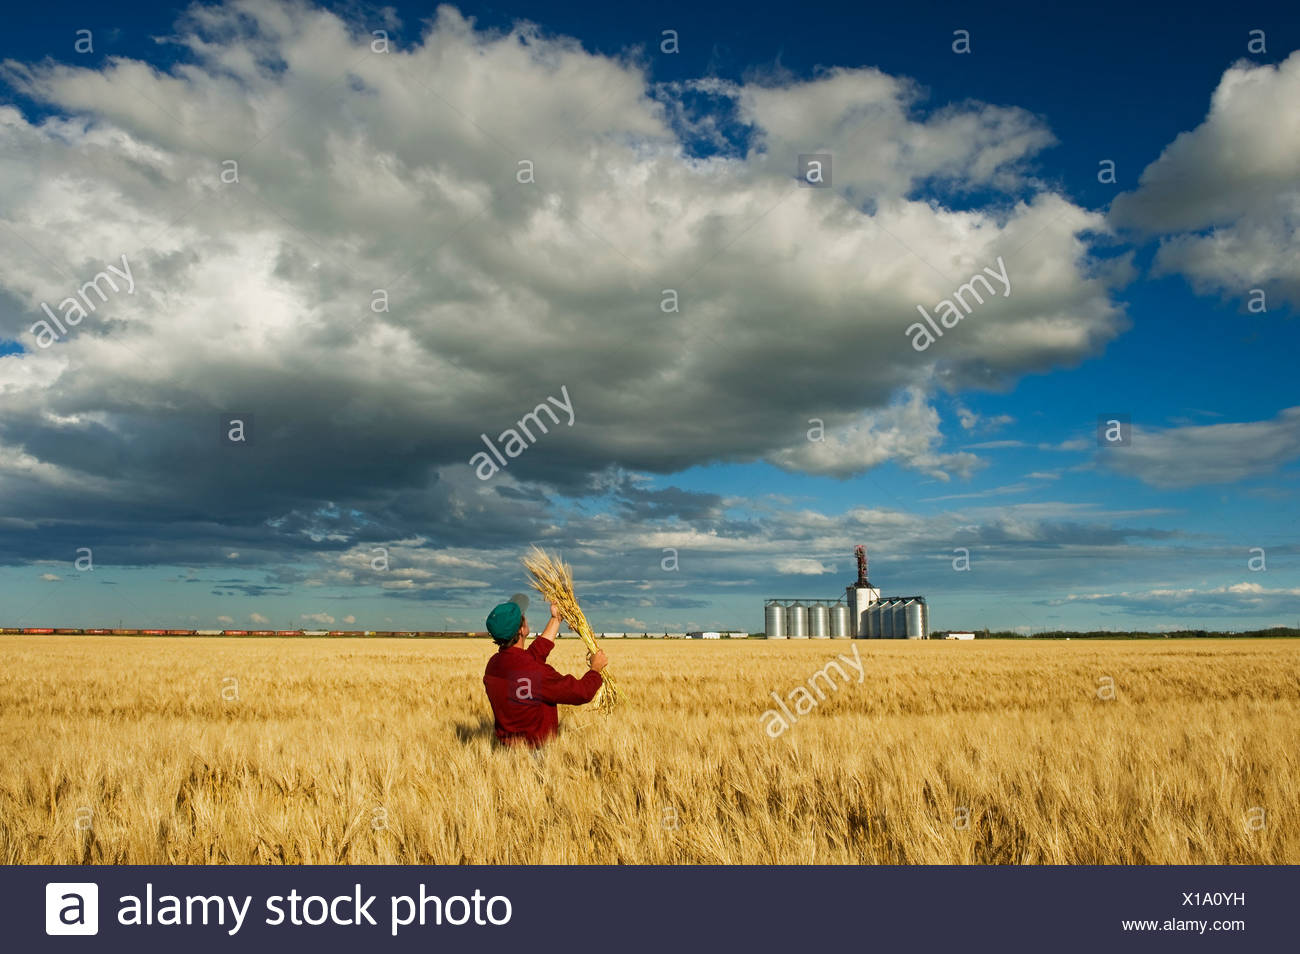 Man looks mature barley with an inland grain terminal and developing cumulonimbus clouds in background near Winnipeg Manitoba Ca - Stock Image